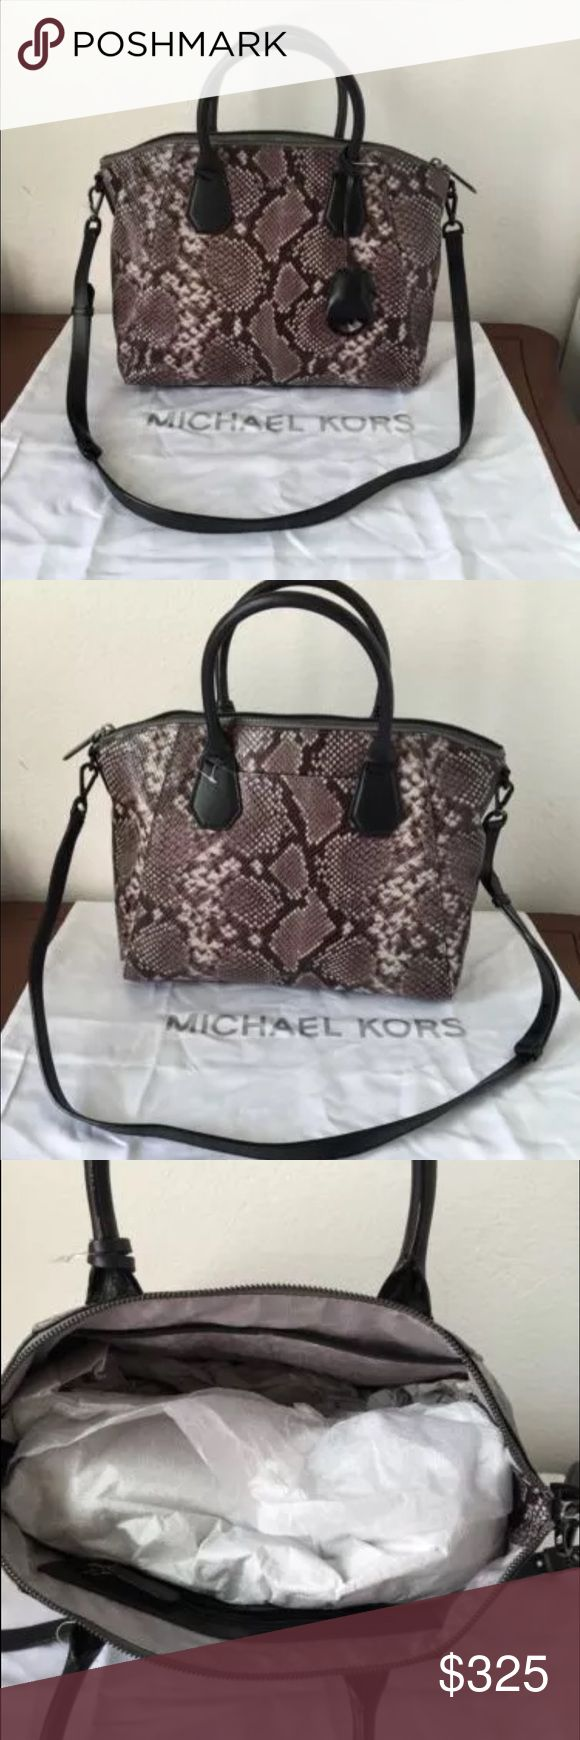 "MICHAEL KORS RILEY PYTHON EMBOSSED LEATHER SATCHEL COLOR:   Steele Gray Interior center divider zip pocket, side zip pocket and Cell phone/multifunction pockets, key clip Exterior gun metal tone hardware detailing, key fob hanging  	Magnetic button closure pocket on back 	Bottom feet 	Fabric lining  	Double handles with detachable adjustable shoulder strap 	4.5"" and 18"" drop  	16"" 1/2 (top) 13"" (bottom)(L) 11""(H), 6""(D)  	 Retails:  $448 with price tag and dust bag MICHAEL Michael Kors Bags…"